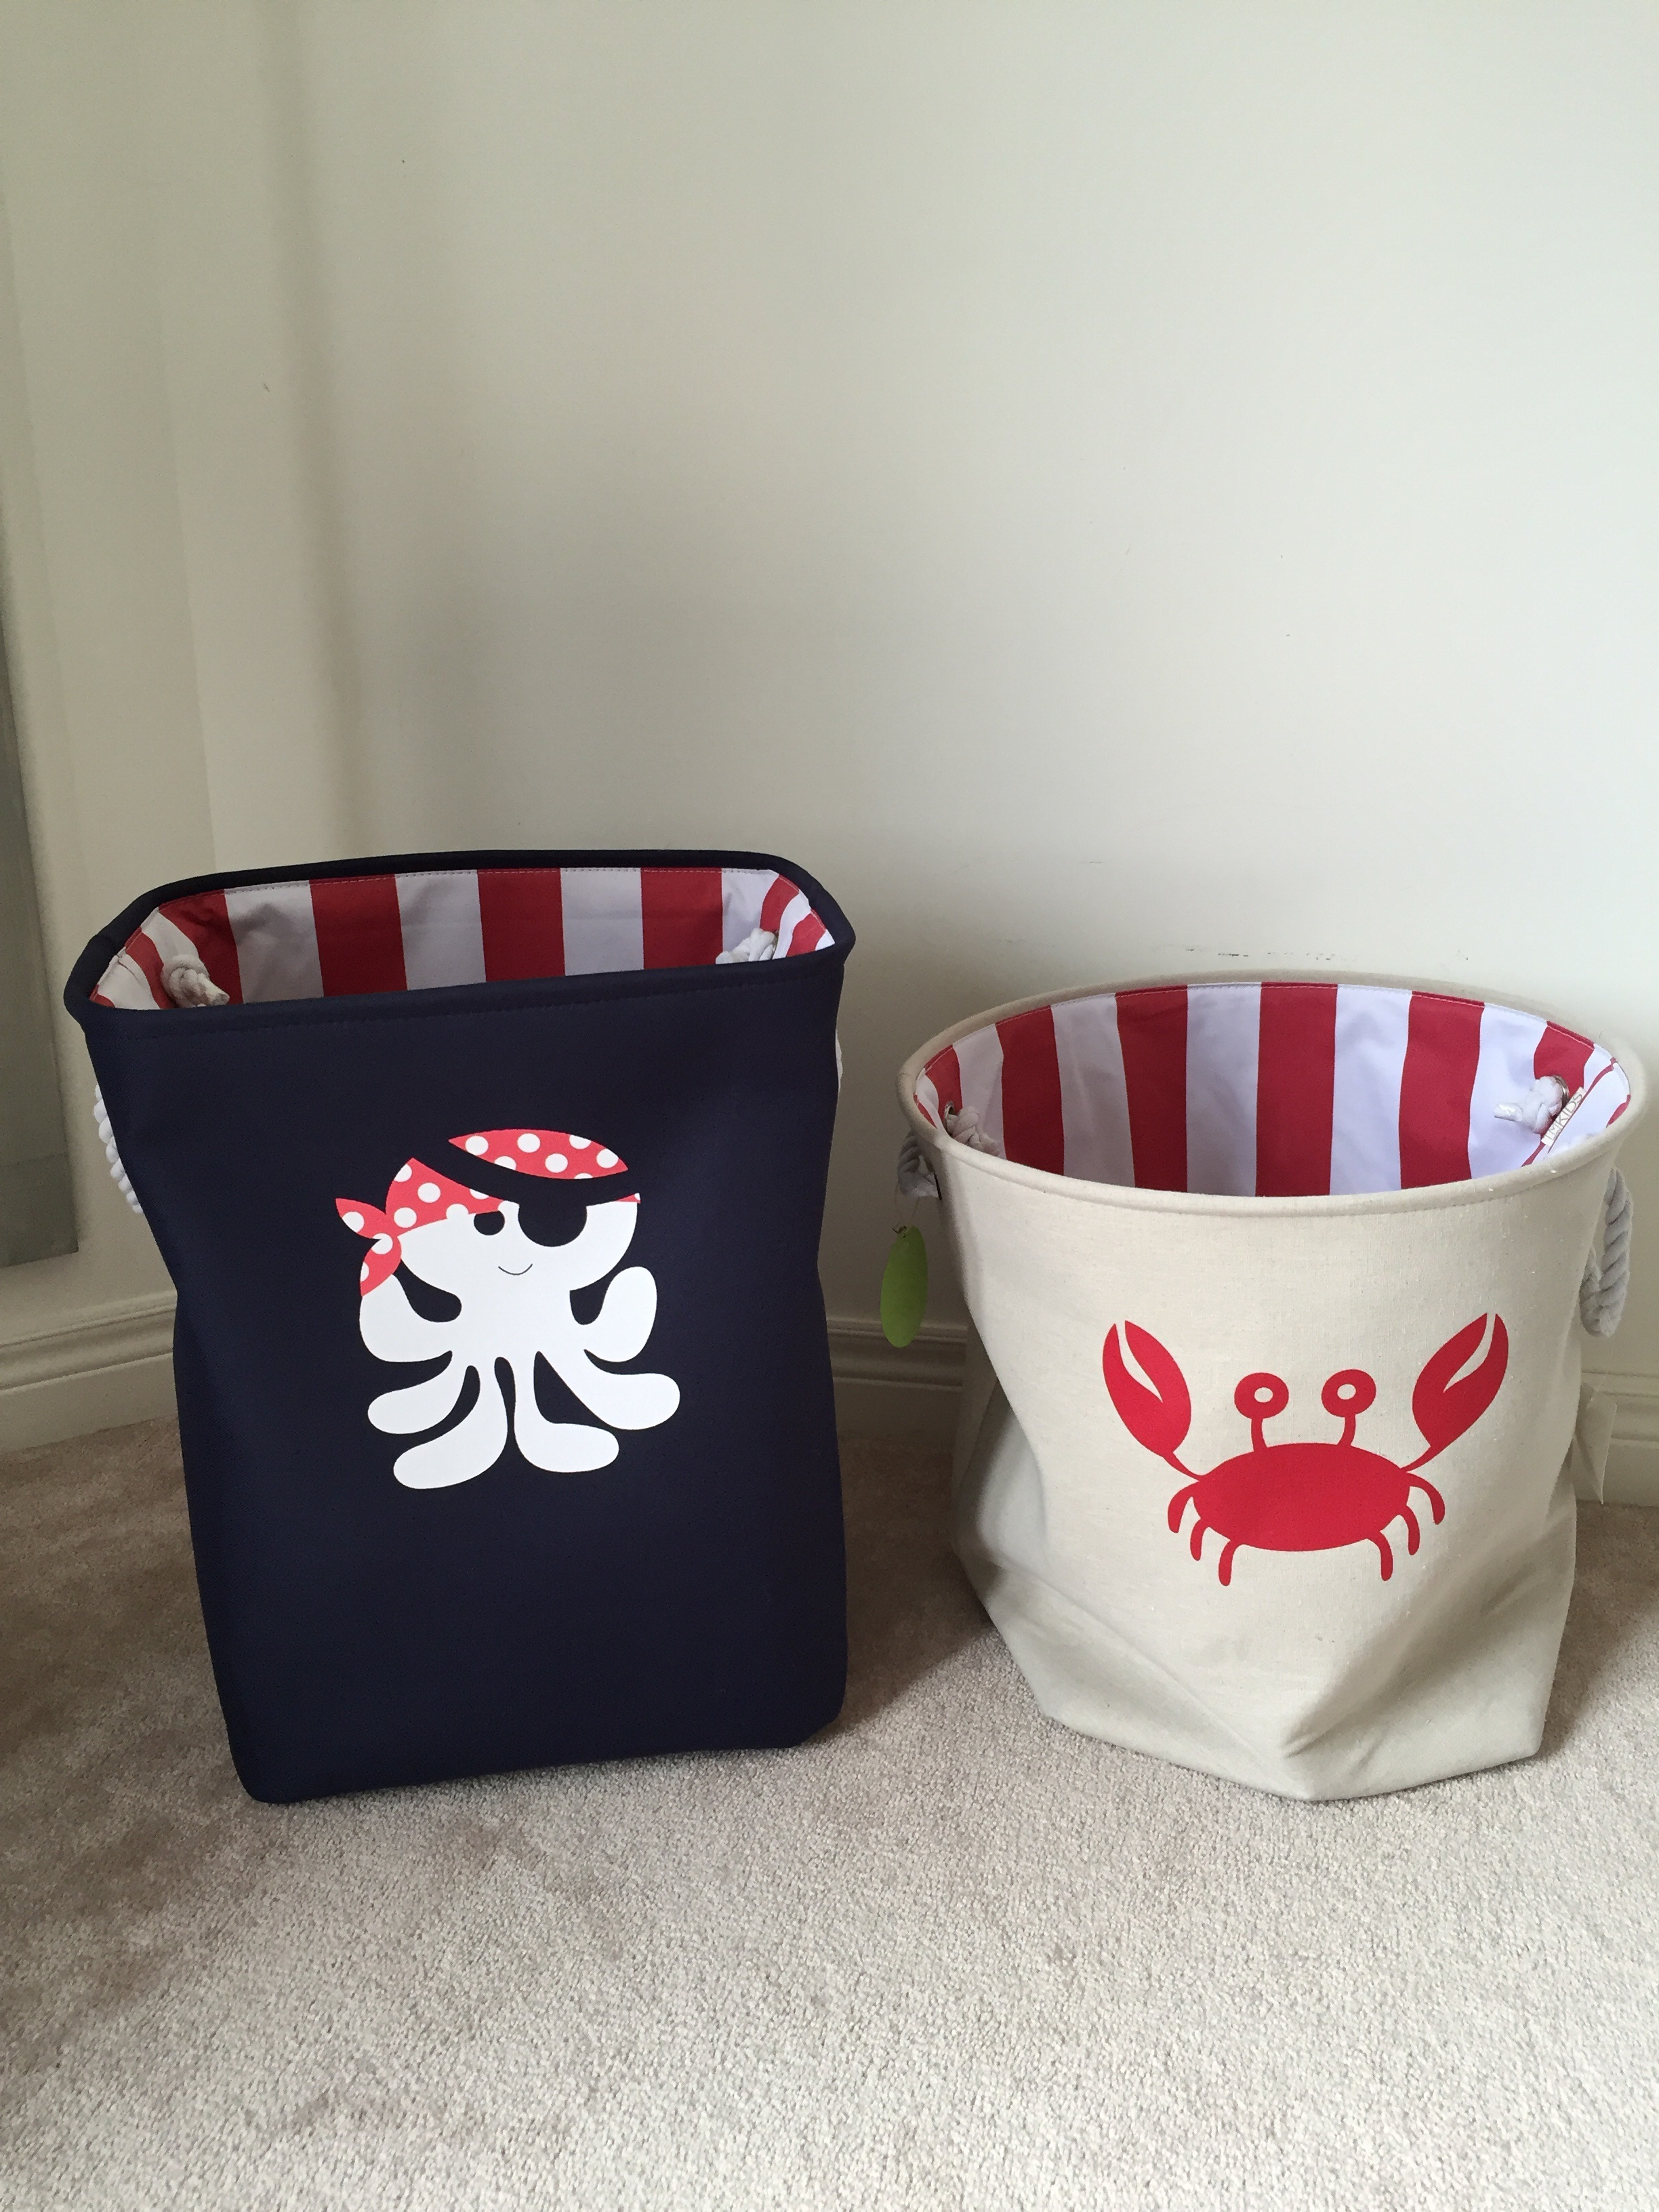 Baskets for laundry and toys from Homesense